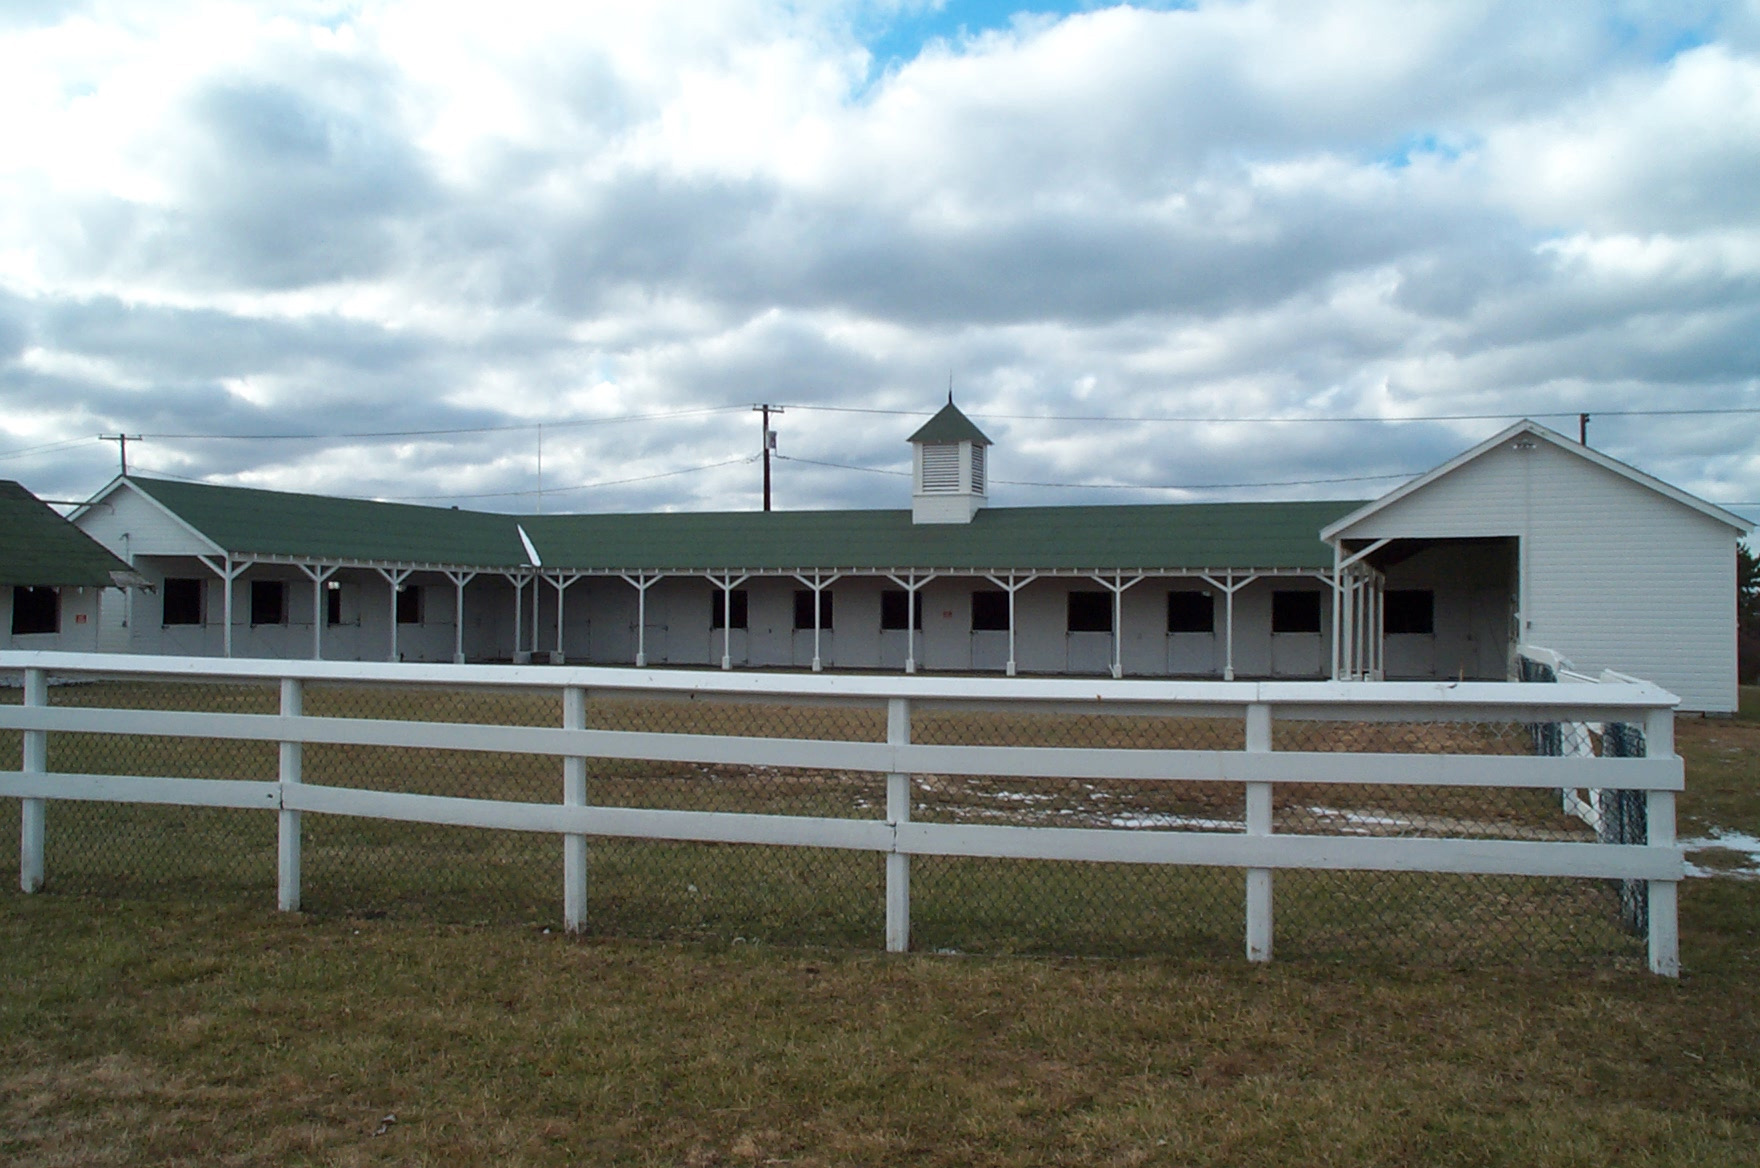 Old Field Farm's Richard Haviland Smythe Main Barn is undergoing a renovation of its roof to preserve the historic structure that is the site of many equine educational and cultural activities. Photo courtesy Old Field Farm, Ltd.